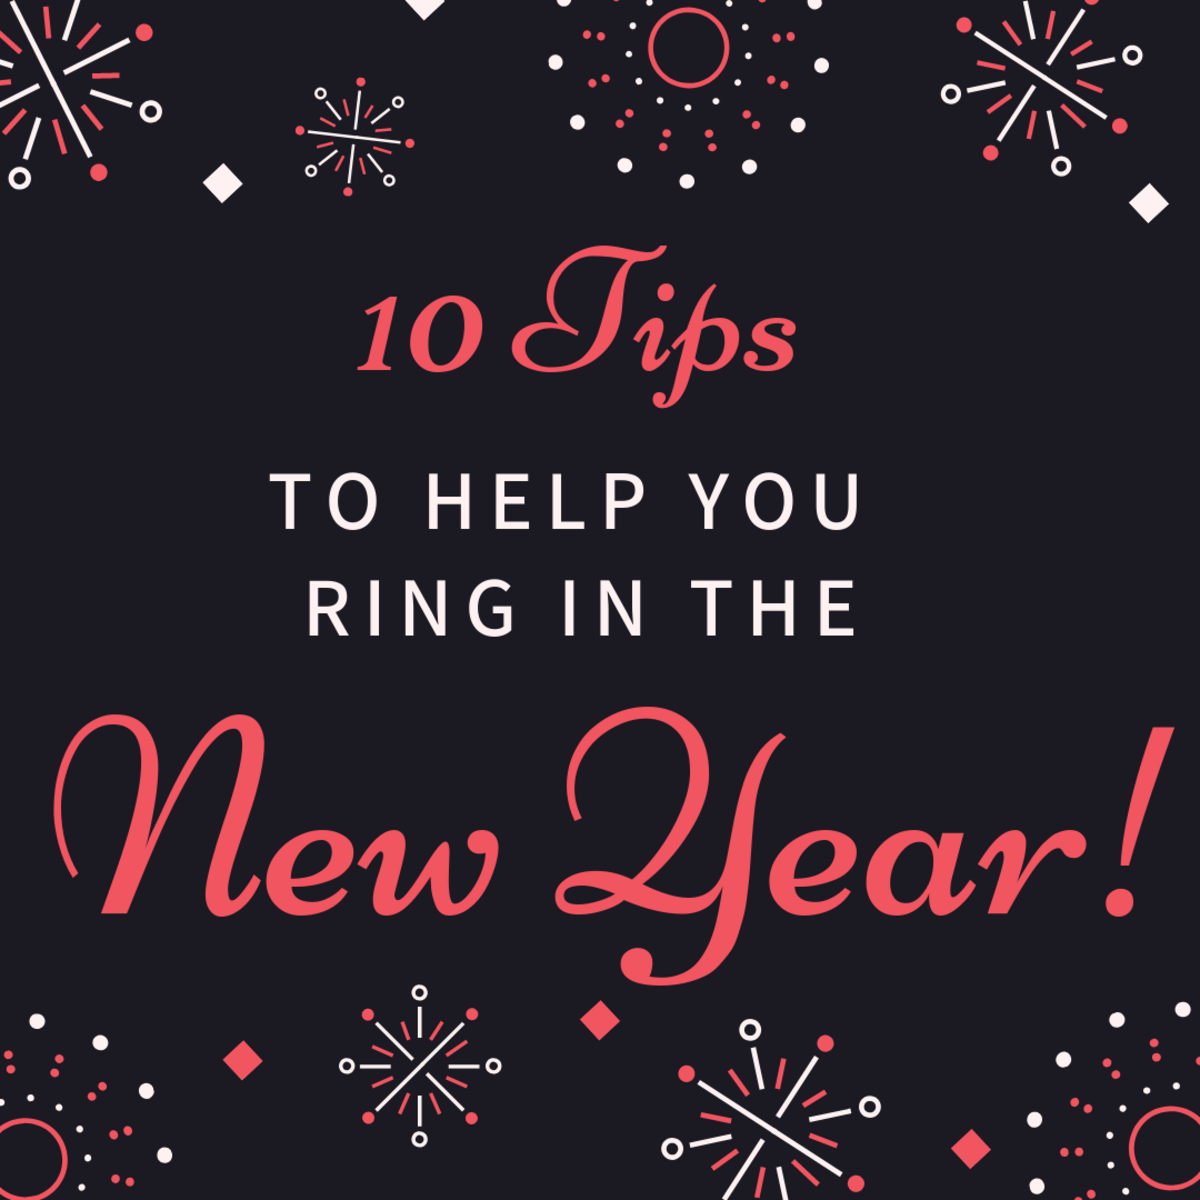 If you want to get the most out of your NYE, you'll need to do a little prep beforehand. Check out these 10 tips to help you ring in the new year right.